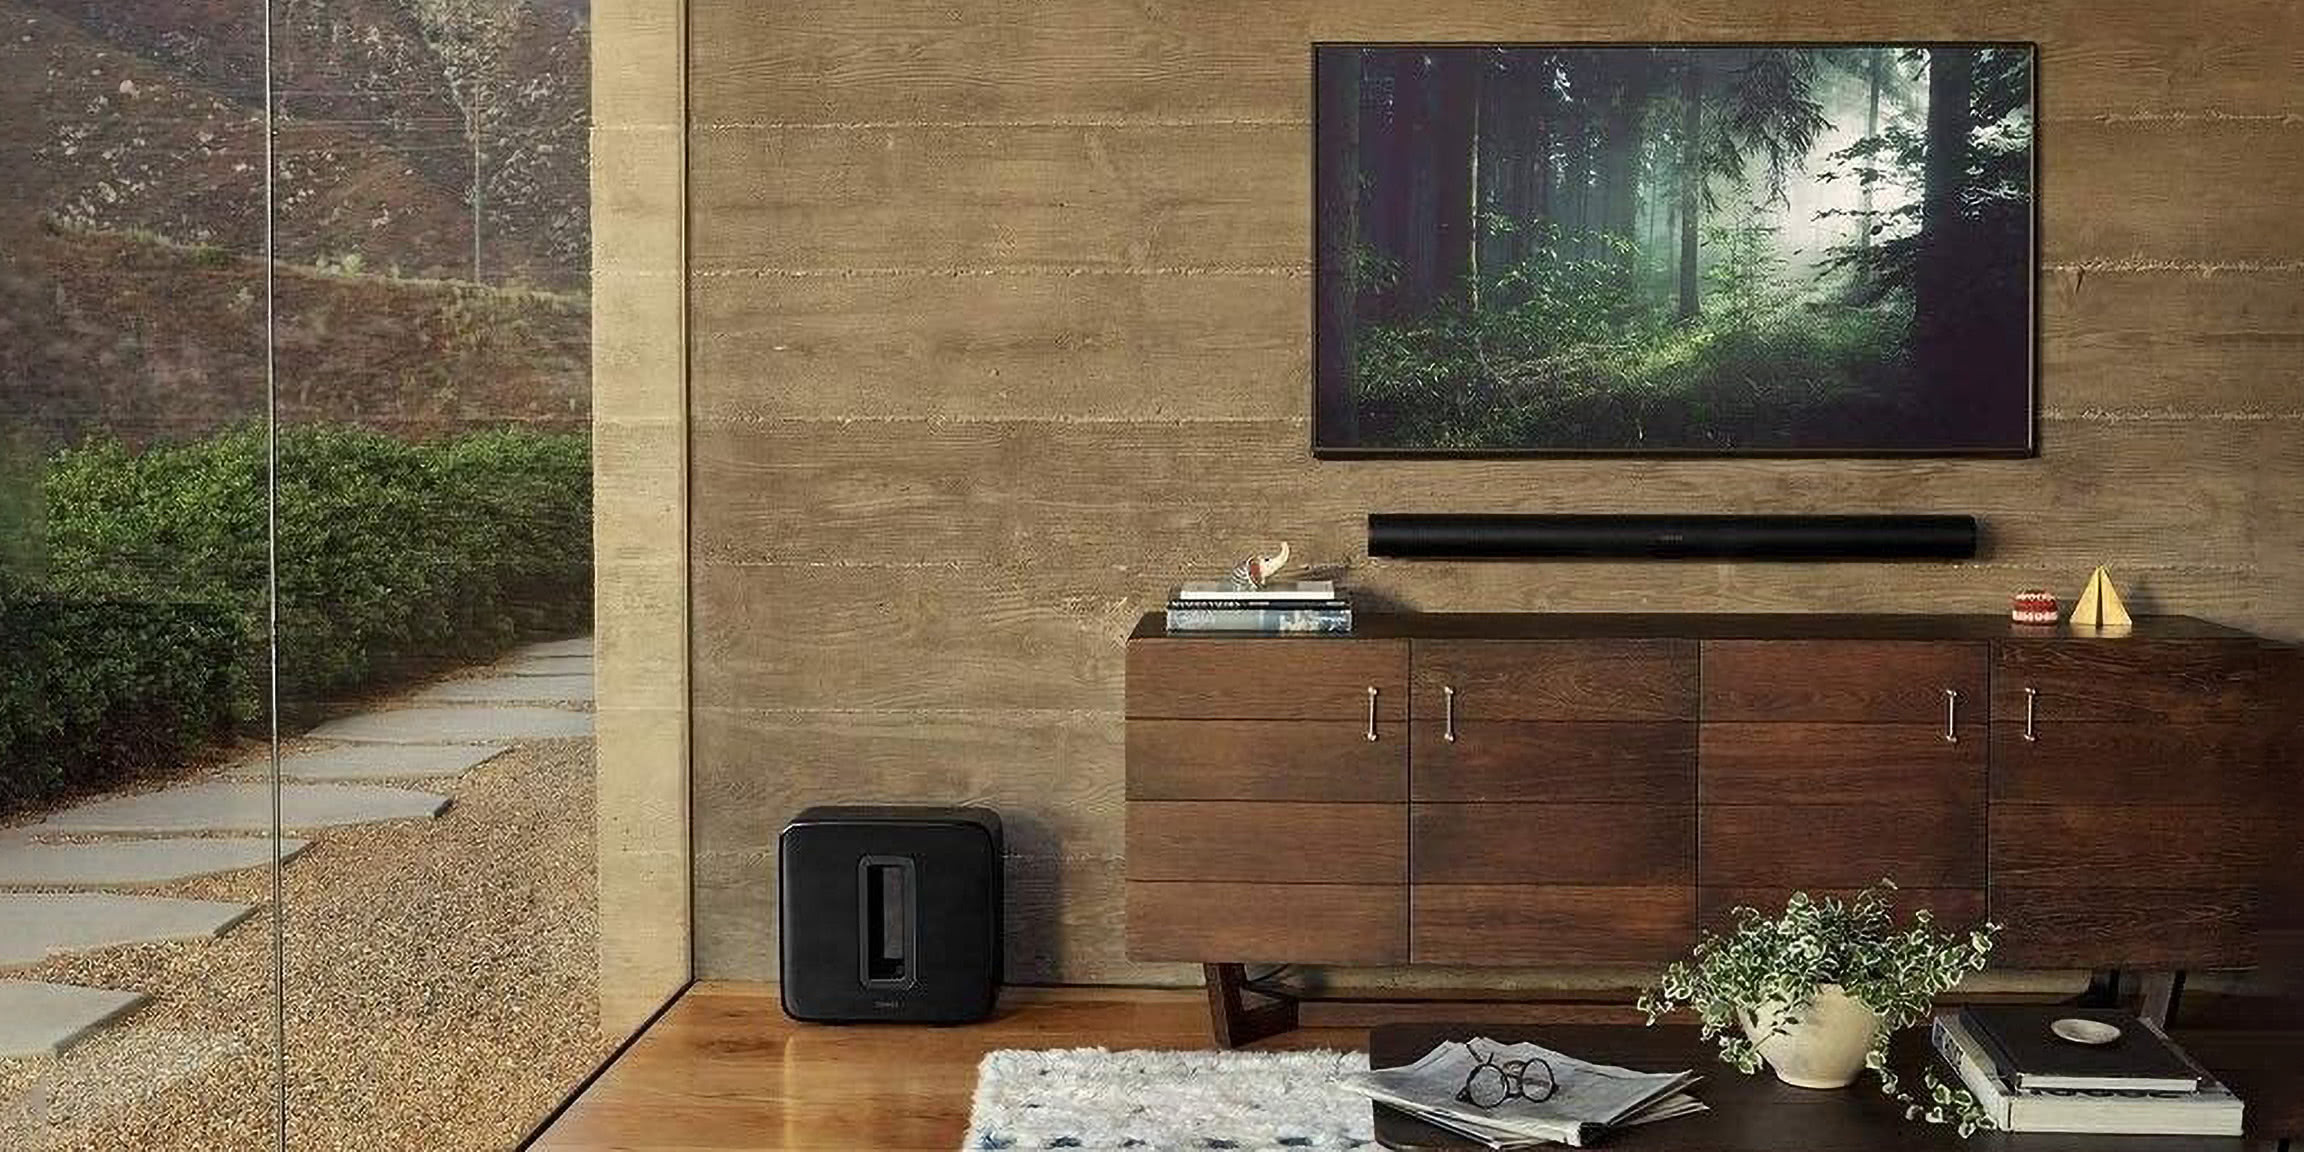 best home theater systems reviews - Luxe Digital